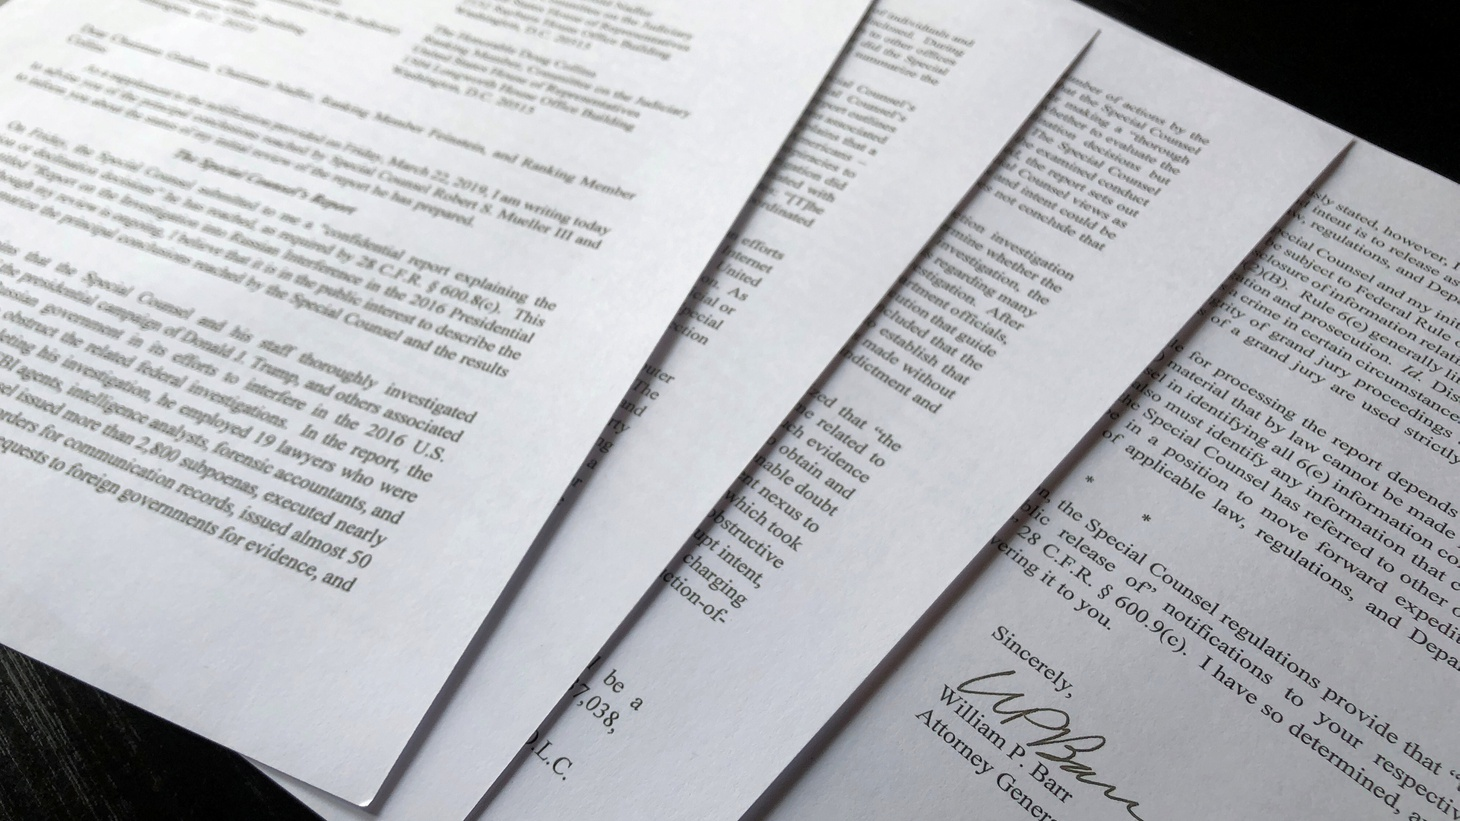 U.S. Attorney General William Barr's signature is seen at the end of his four page letter to U.S. congressional leaders on the conclusions of Special Counsel Robert Mueller's report on Russian meddling in the 2016 election -- after the letter was released by the House Judiciary Committee in Washington, U.S., March 24, 2019.